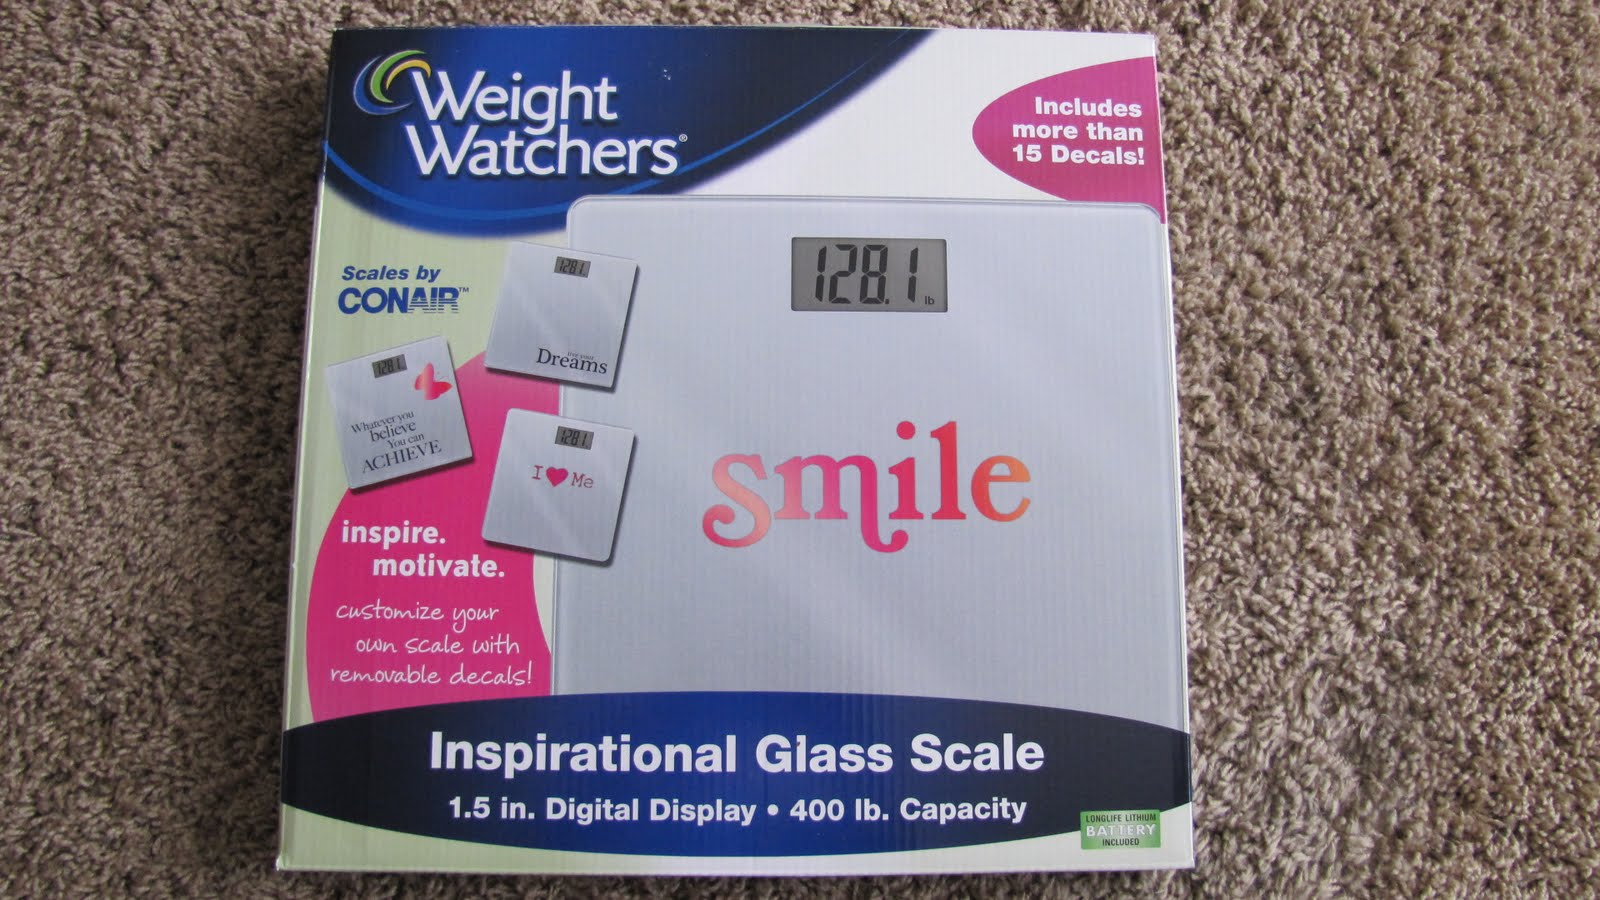 how to change kg to lbs on weight watchers scale